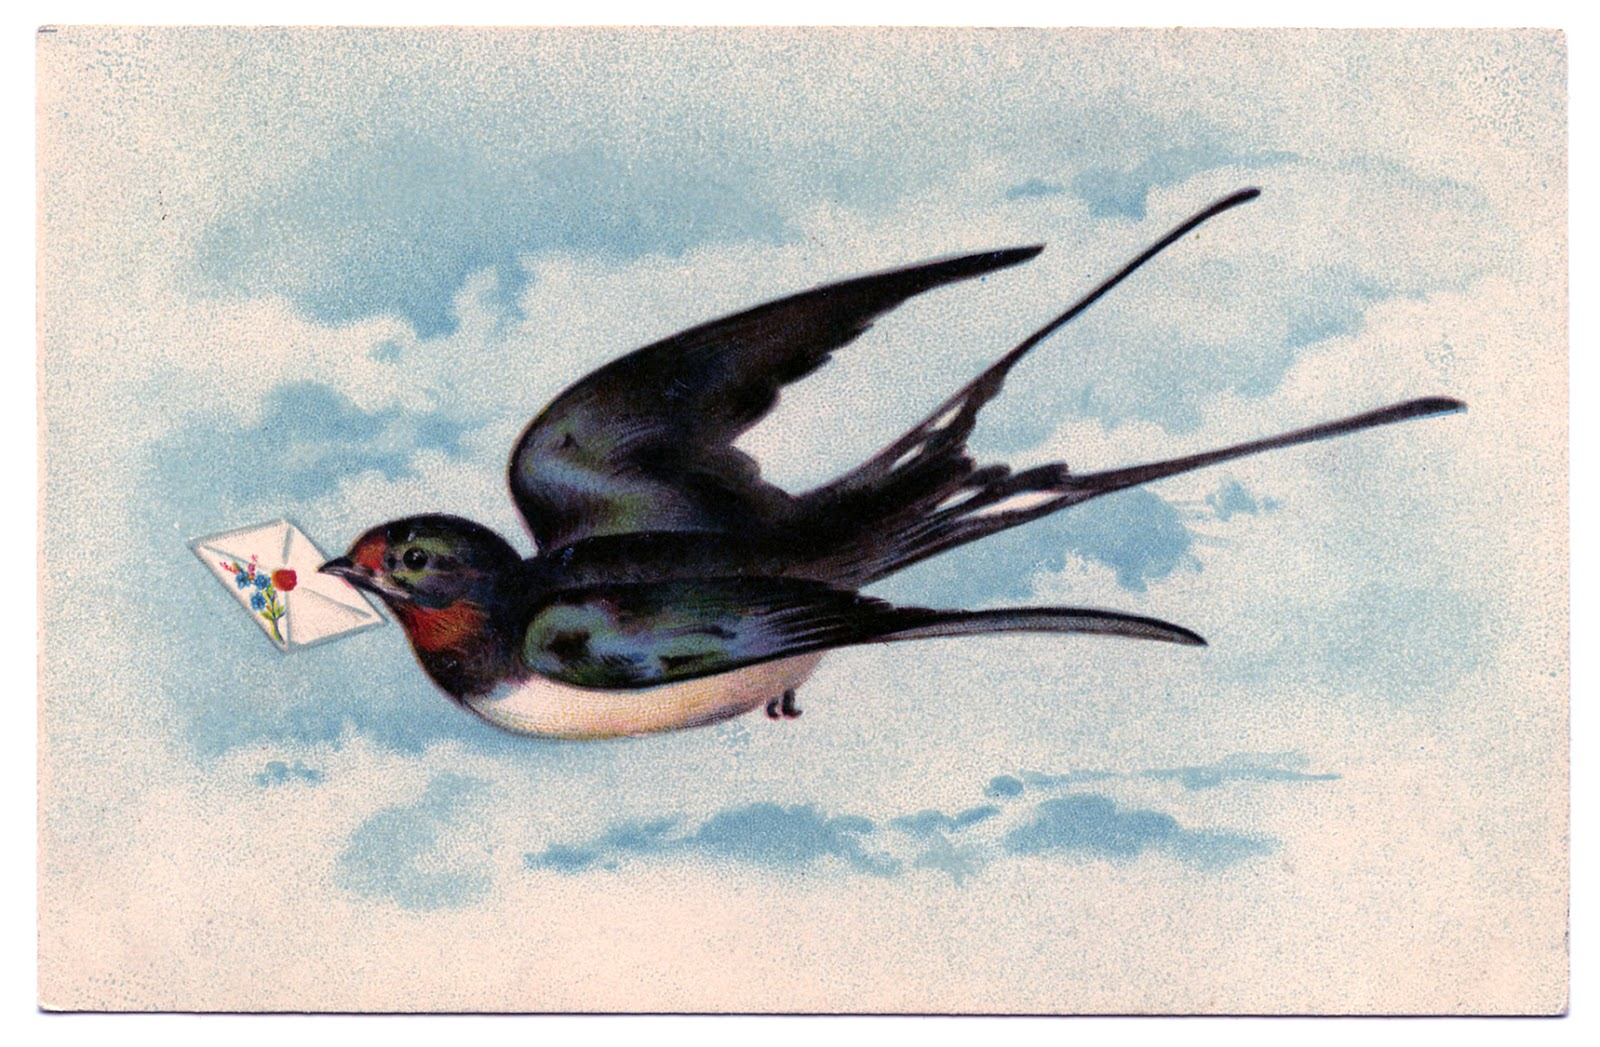 Swallows were illustratedbeautifullyin fine jewelry because of theirglidingslender stream lined bodies and forked long pointed wings.